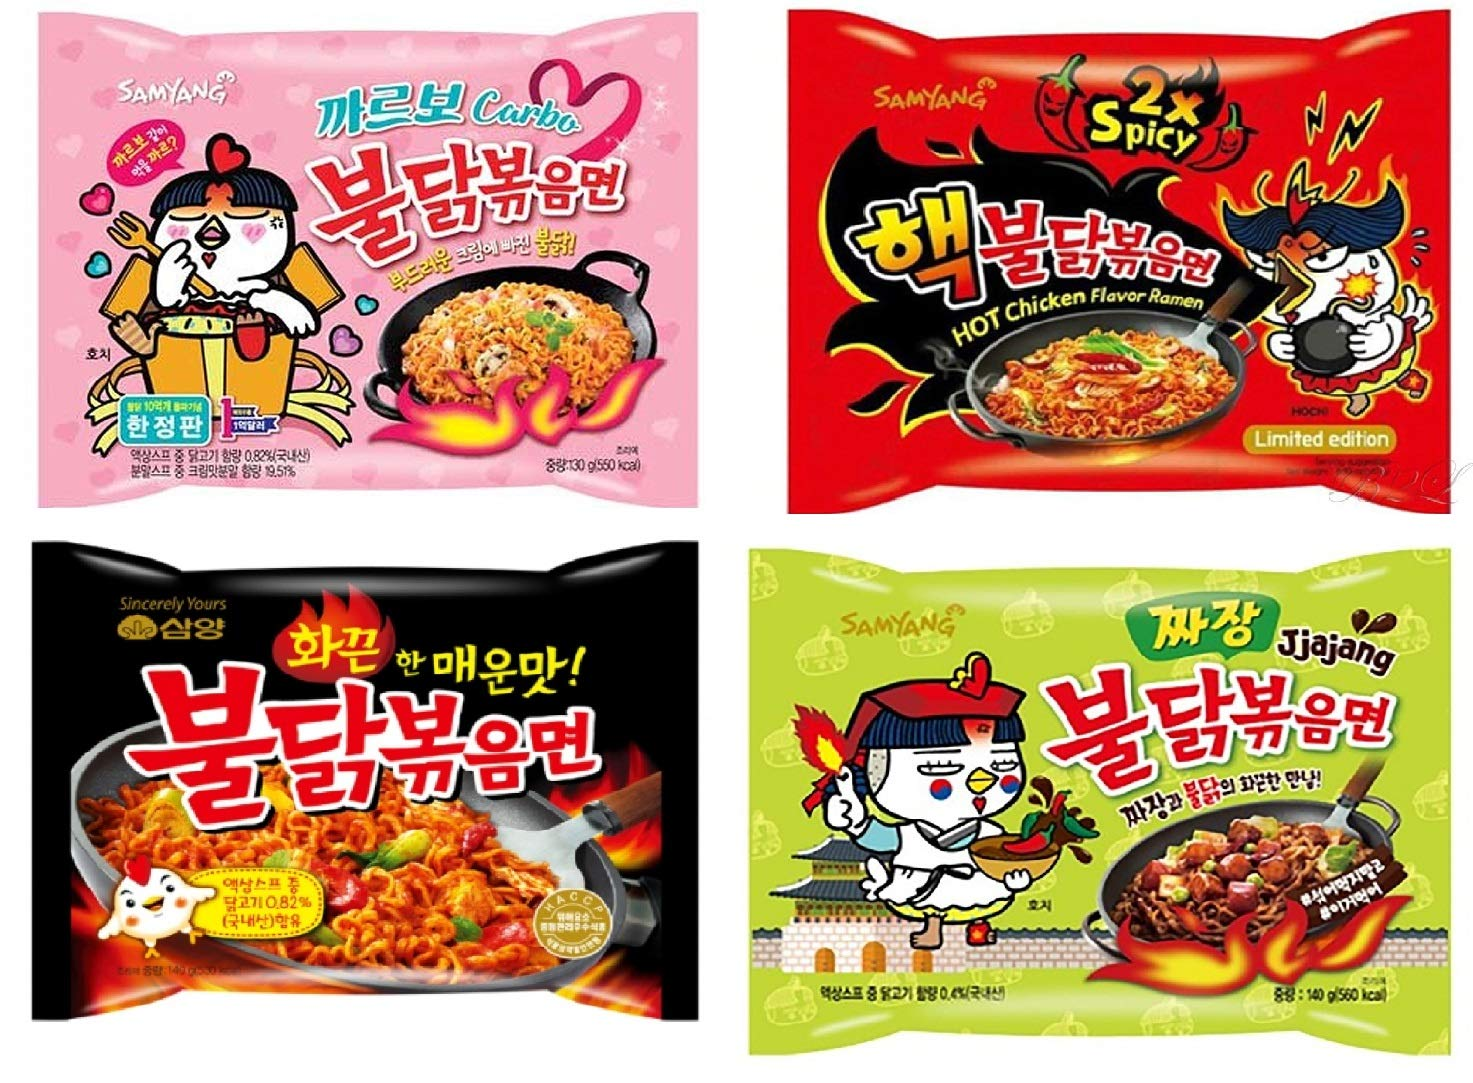 Samyang Ramen / Spicy Chicken Roasted Noodles (4 Flavor Combo (20 Pk))